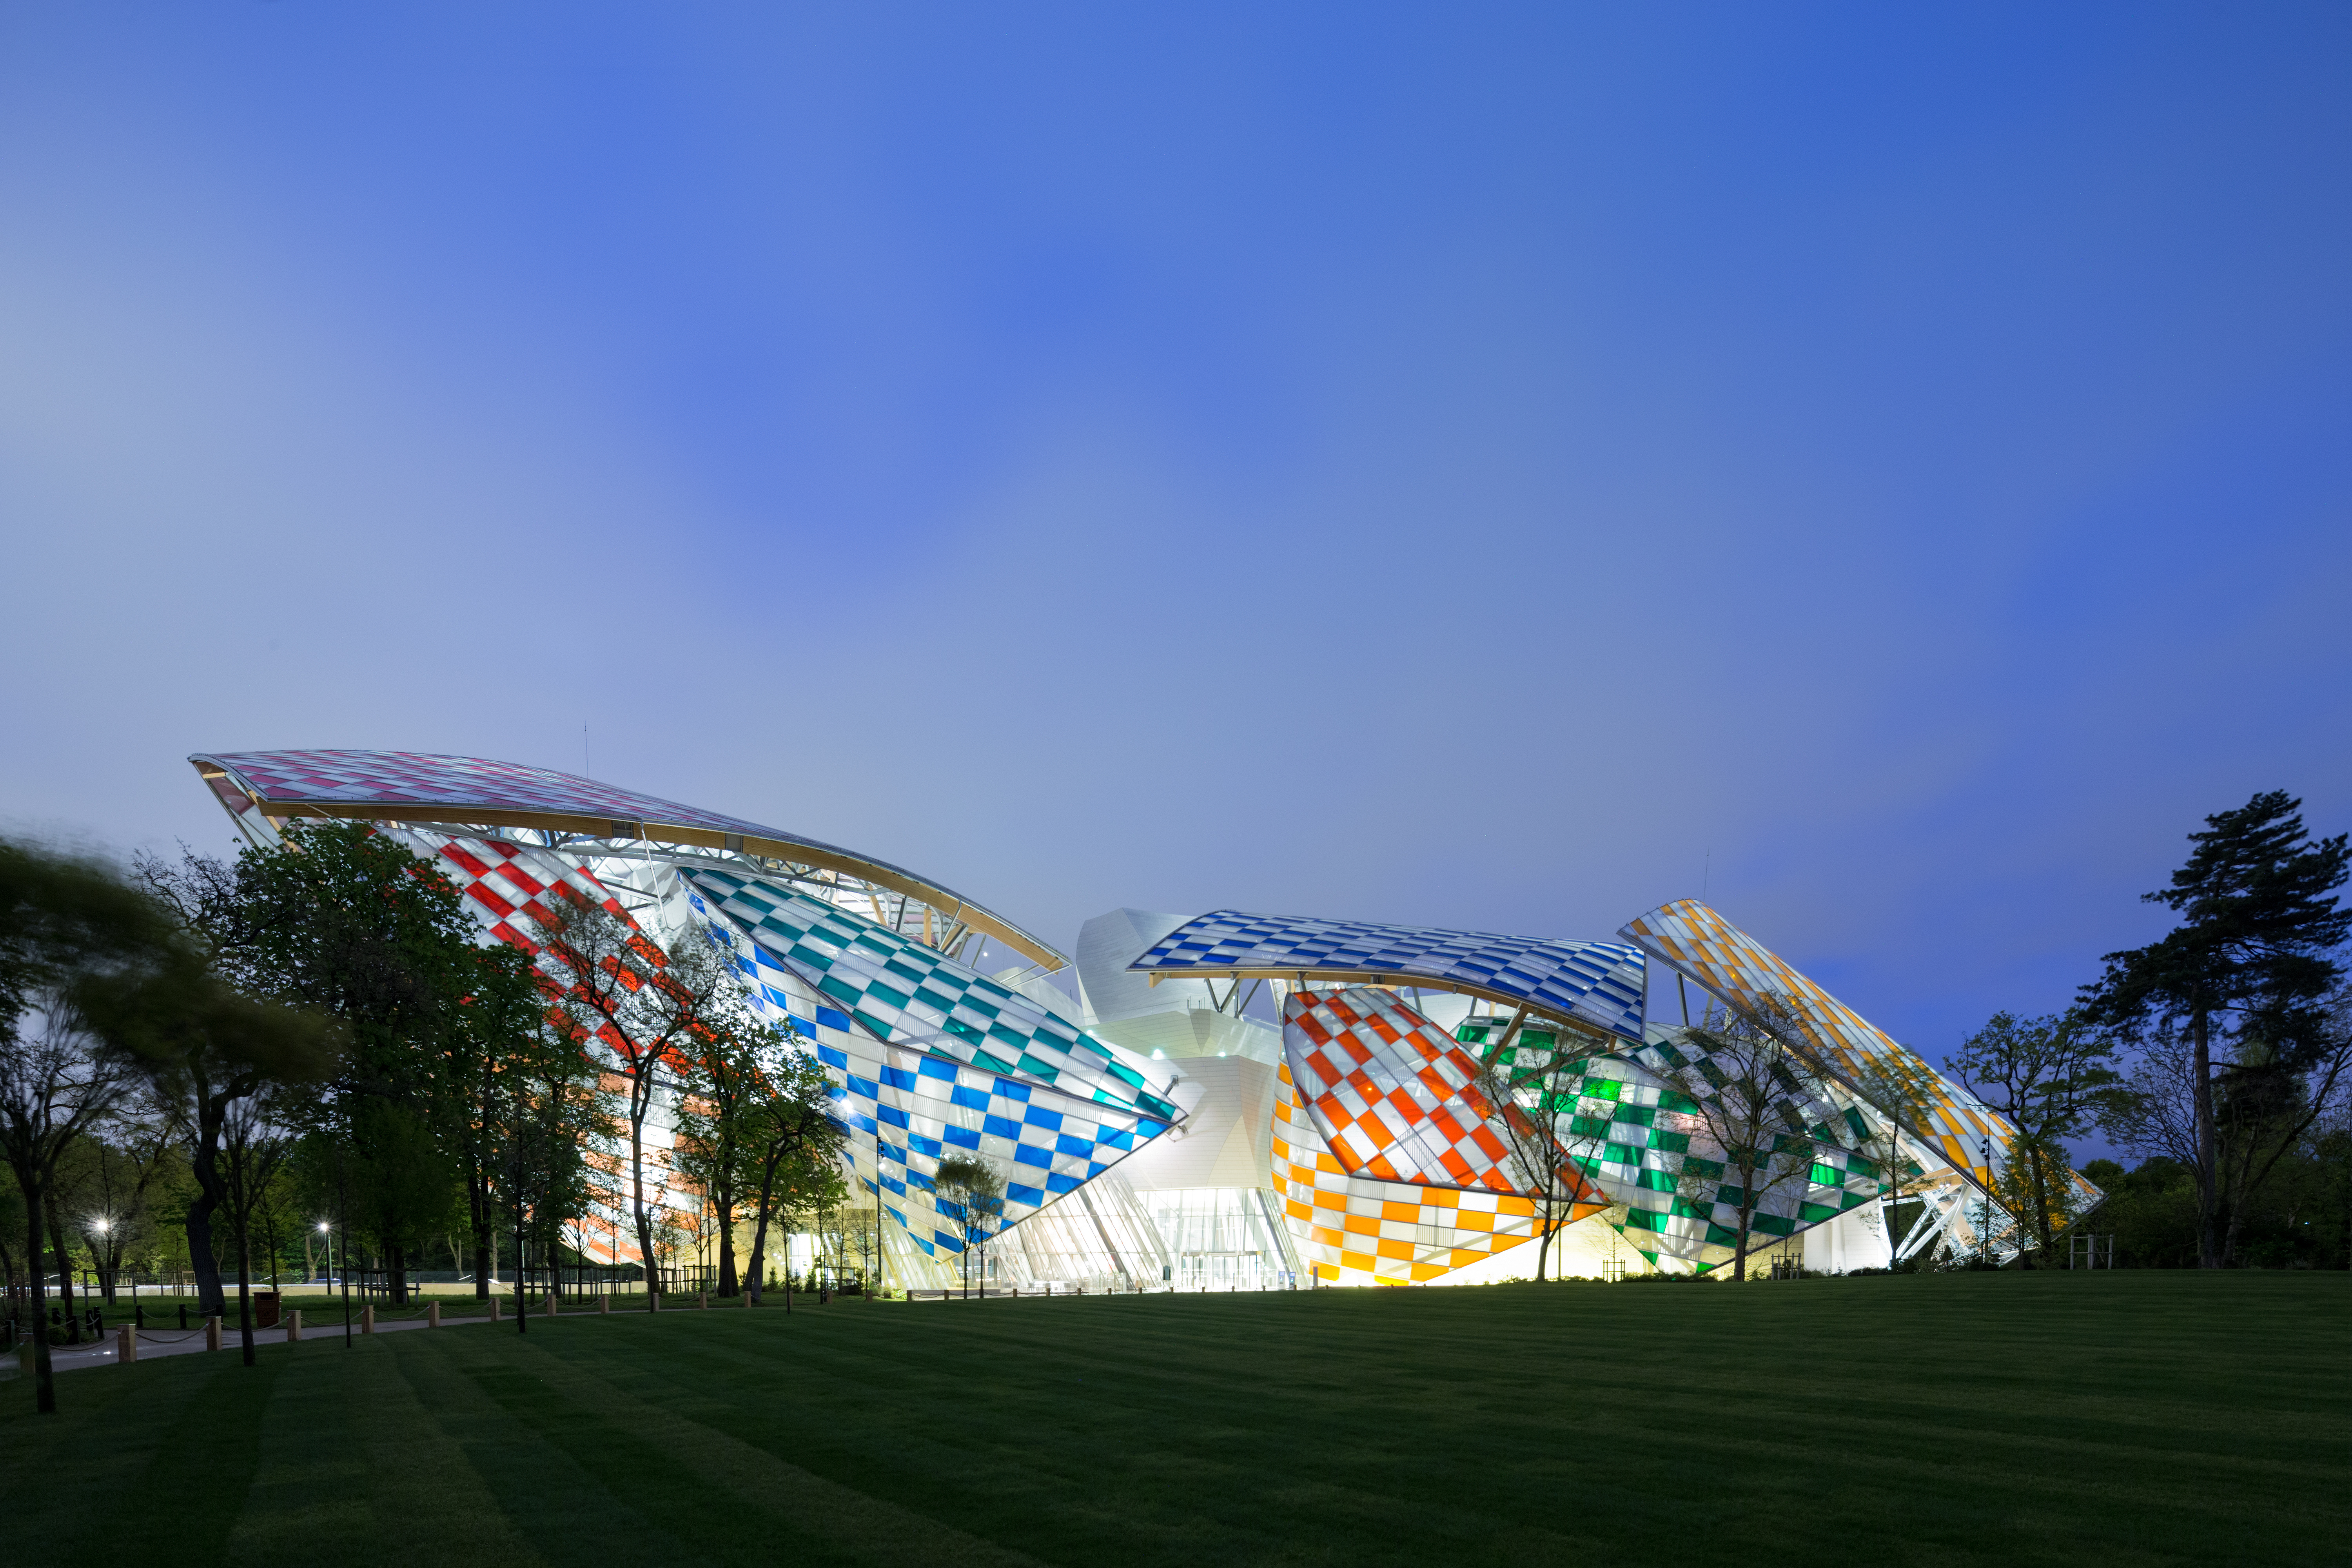 The Observatory of Light at the Fondation Louis Vuitton - Archpaper.com